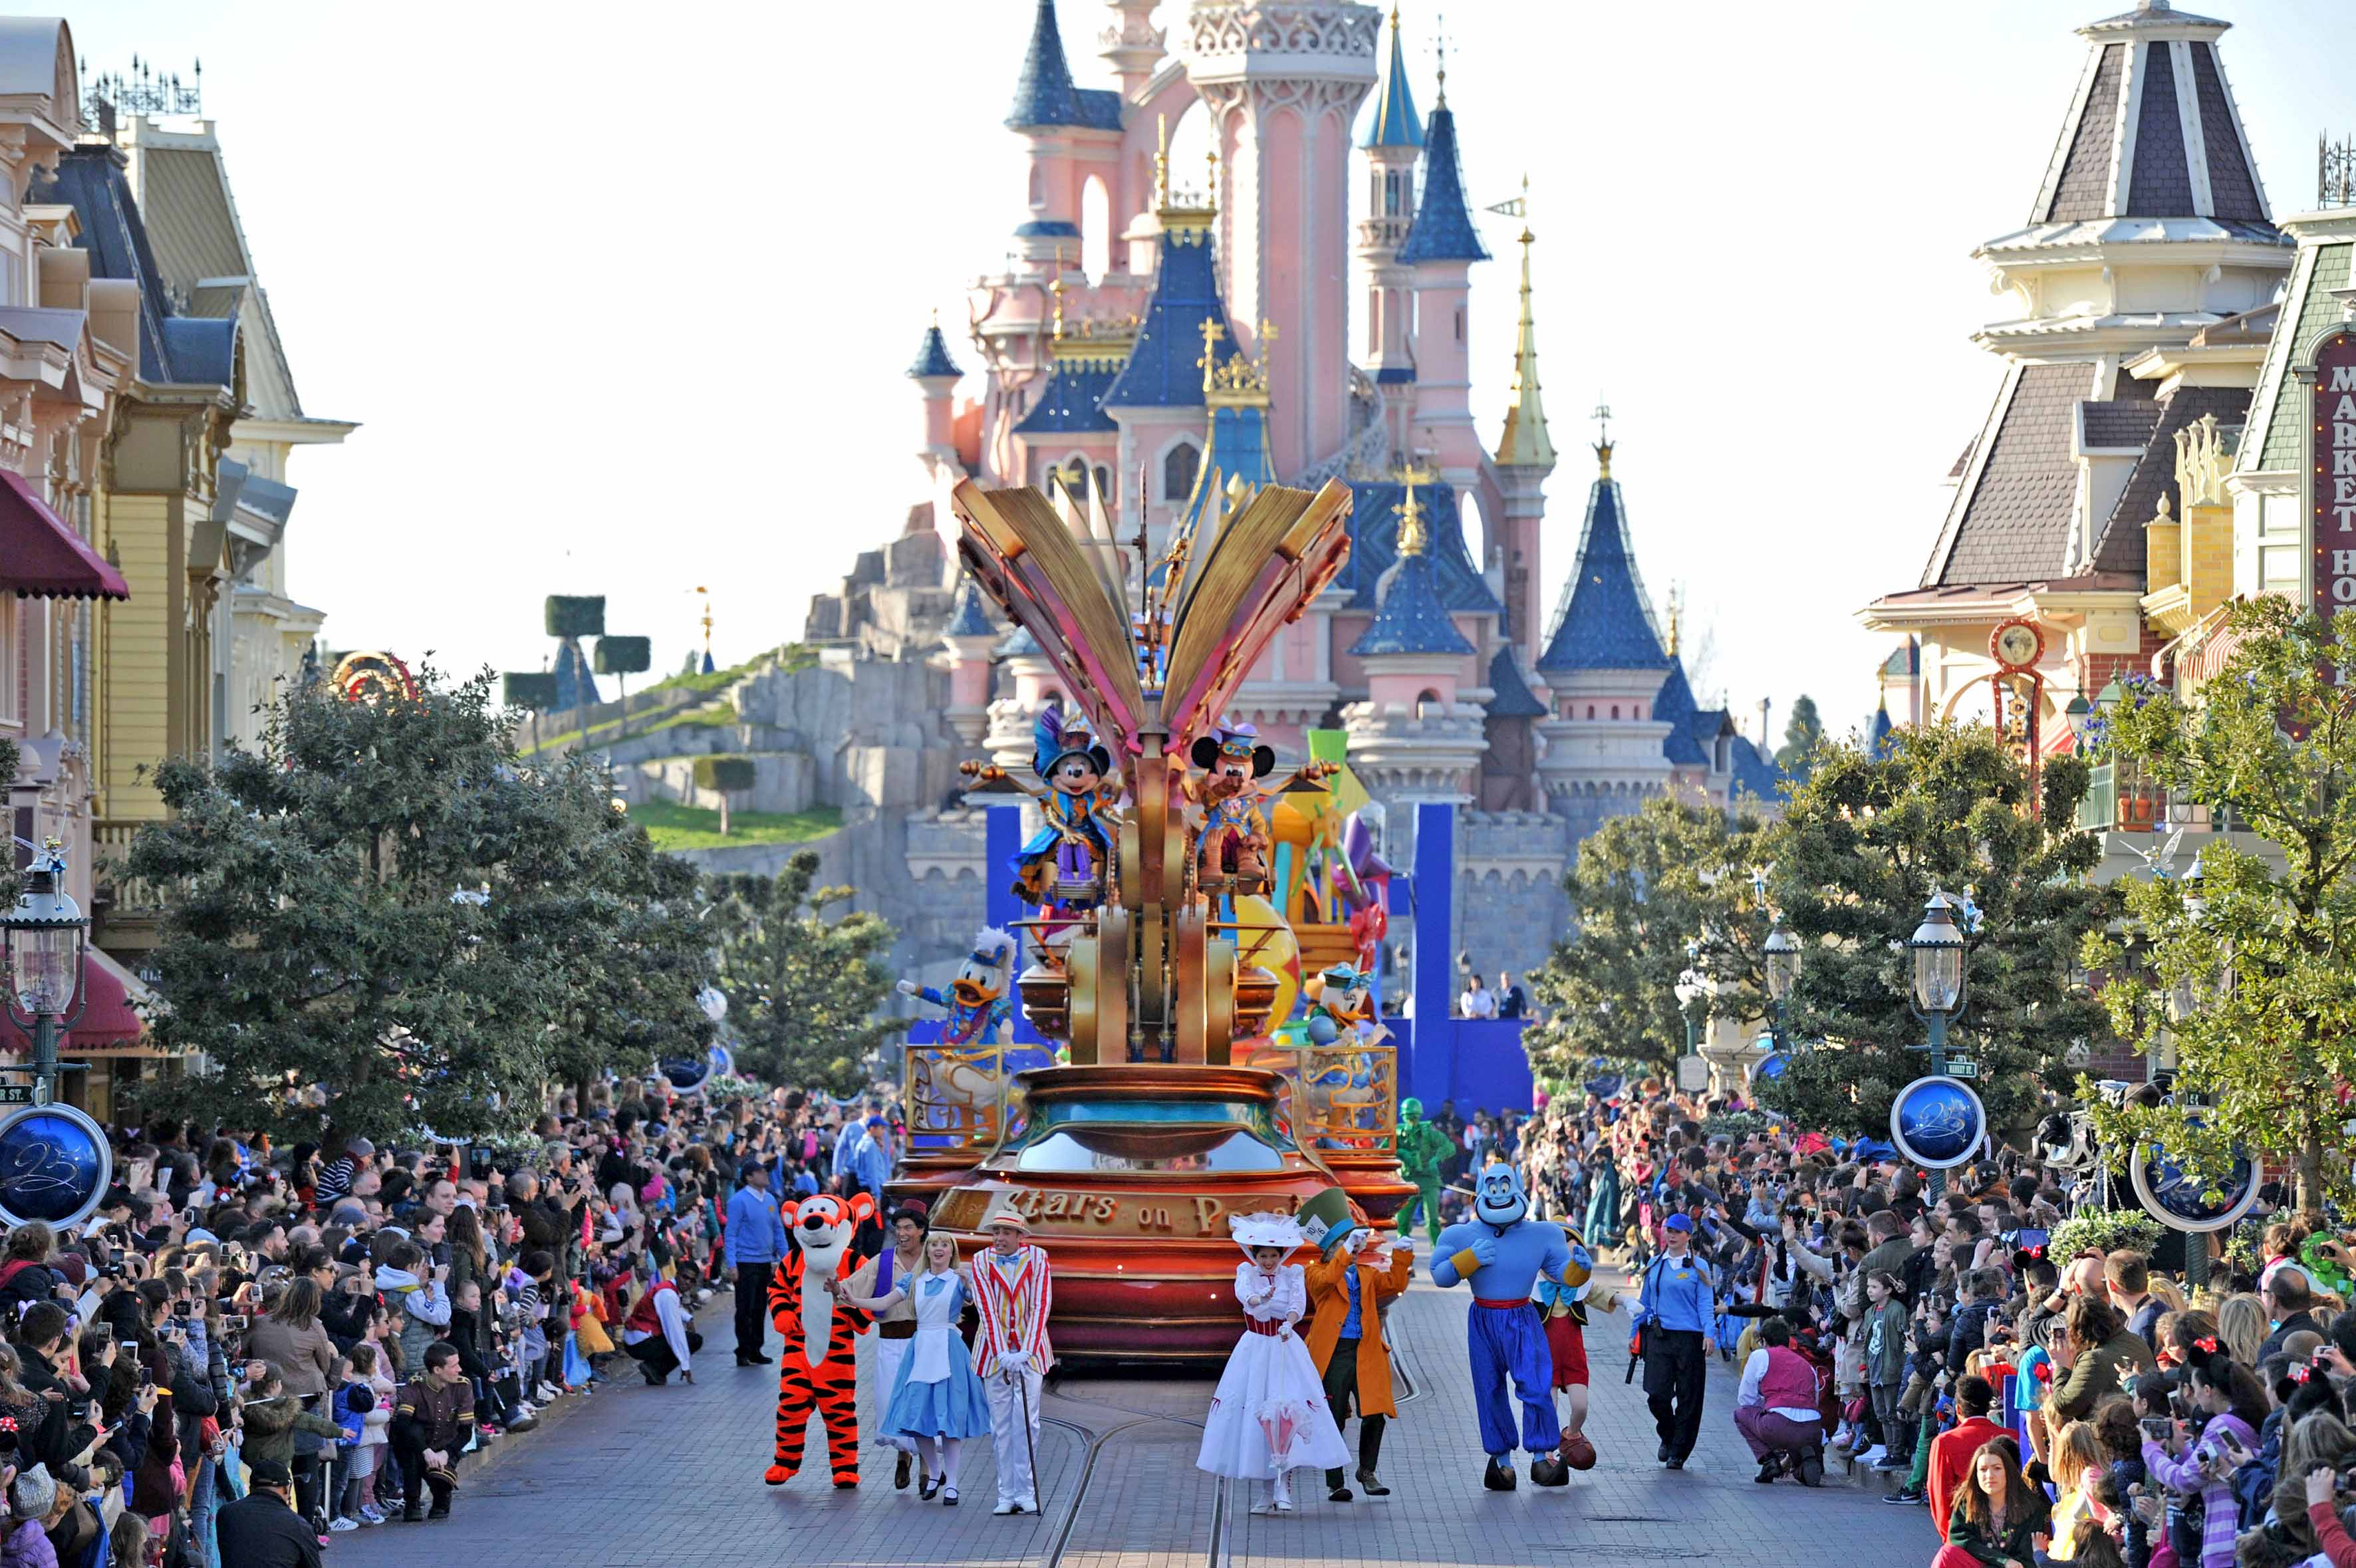 Sempre divertente Disneyland Paris - Gist.it